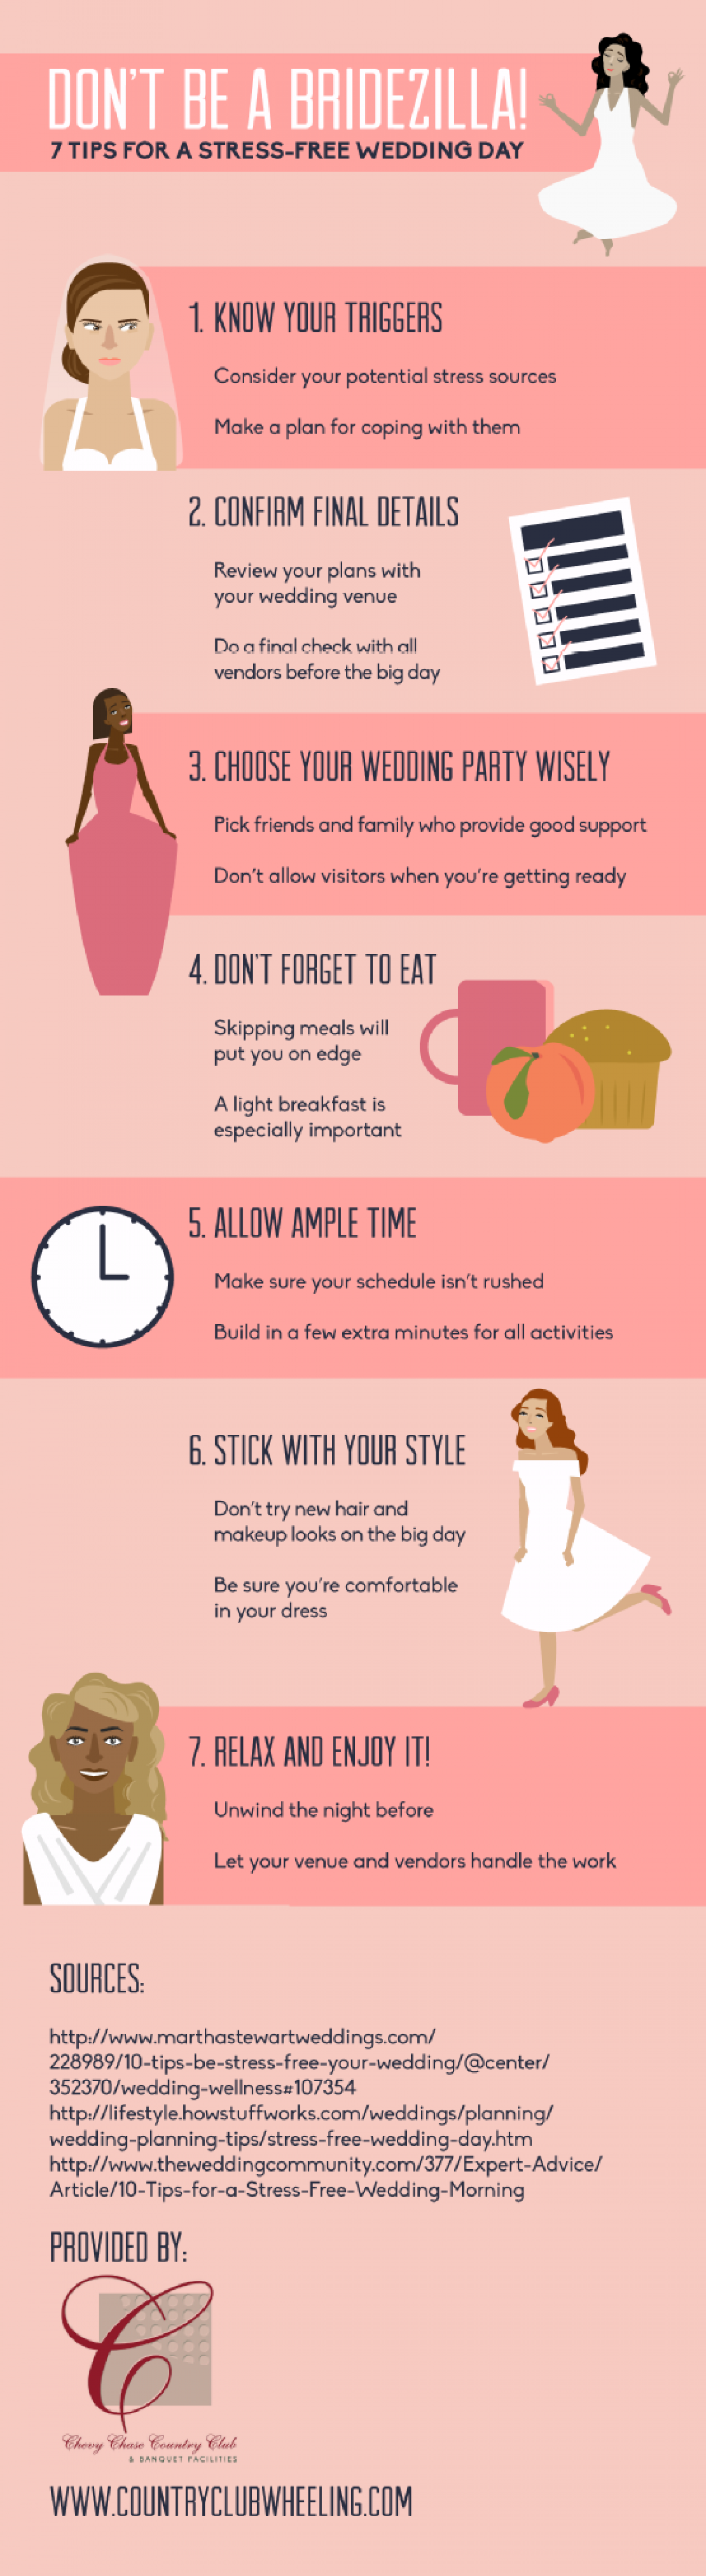 Don't Be a Bridezilla! 7 Tips for a Stress-Free Wedding Day Infographic